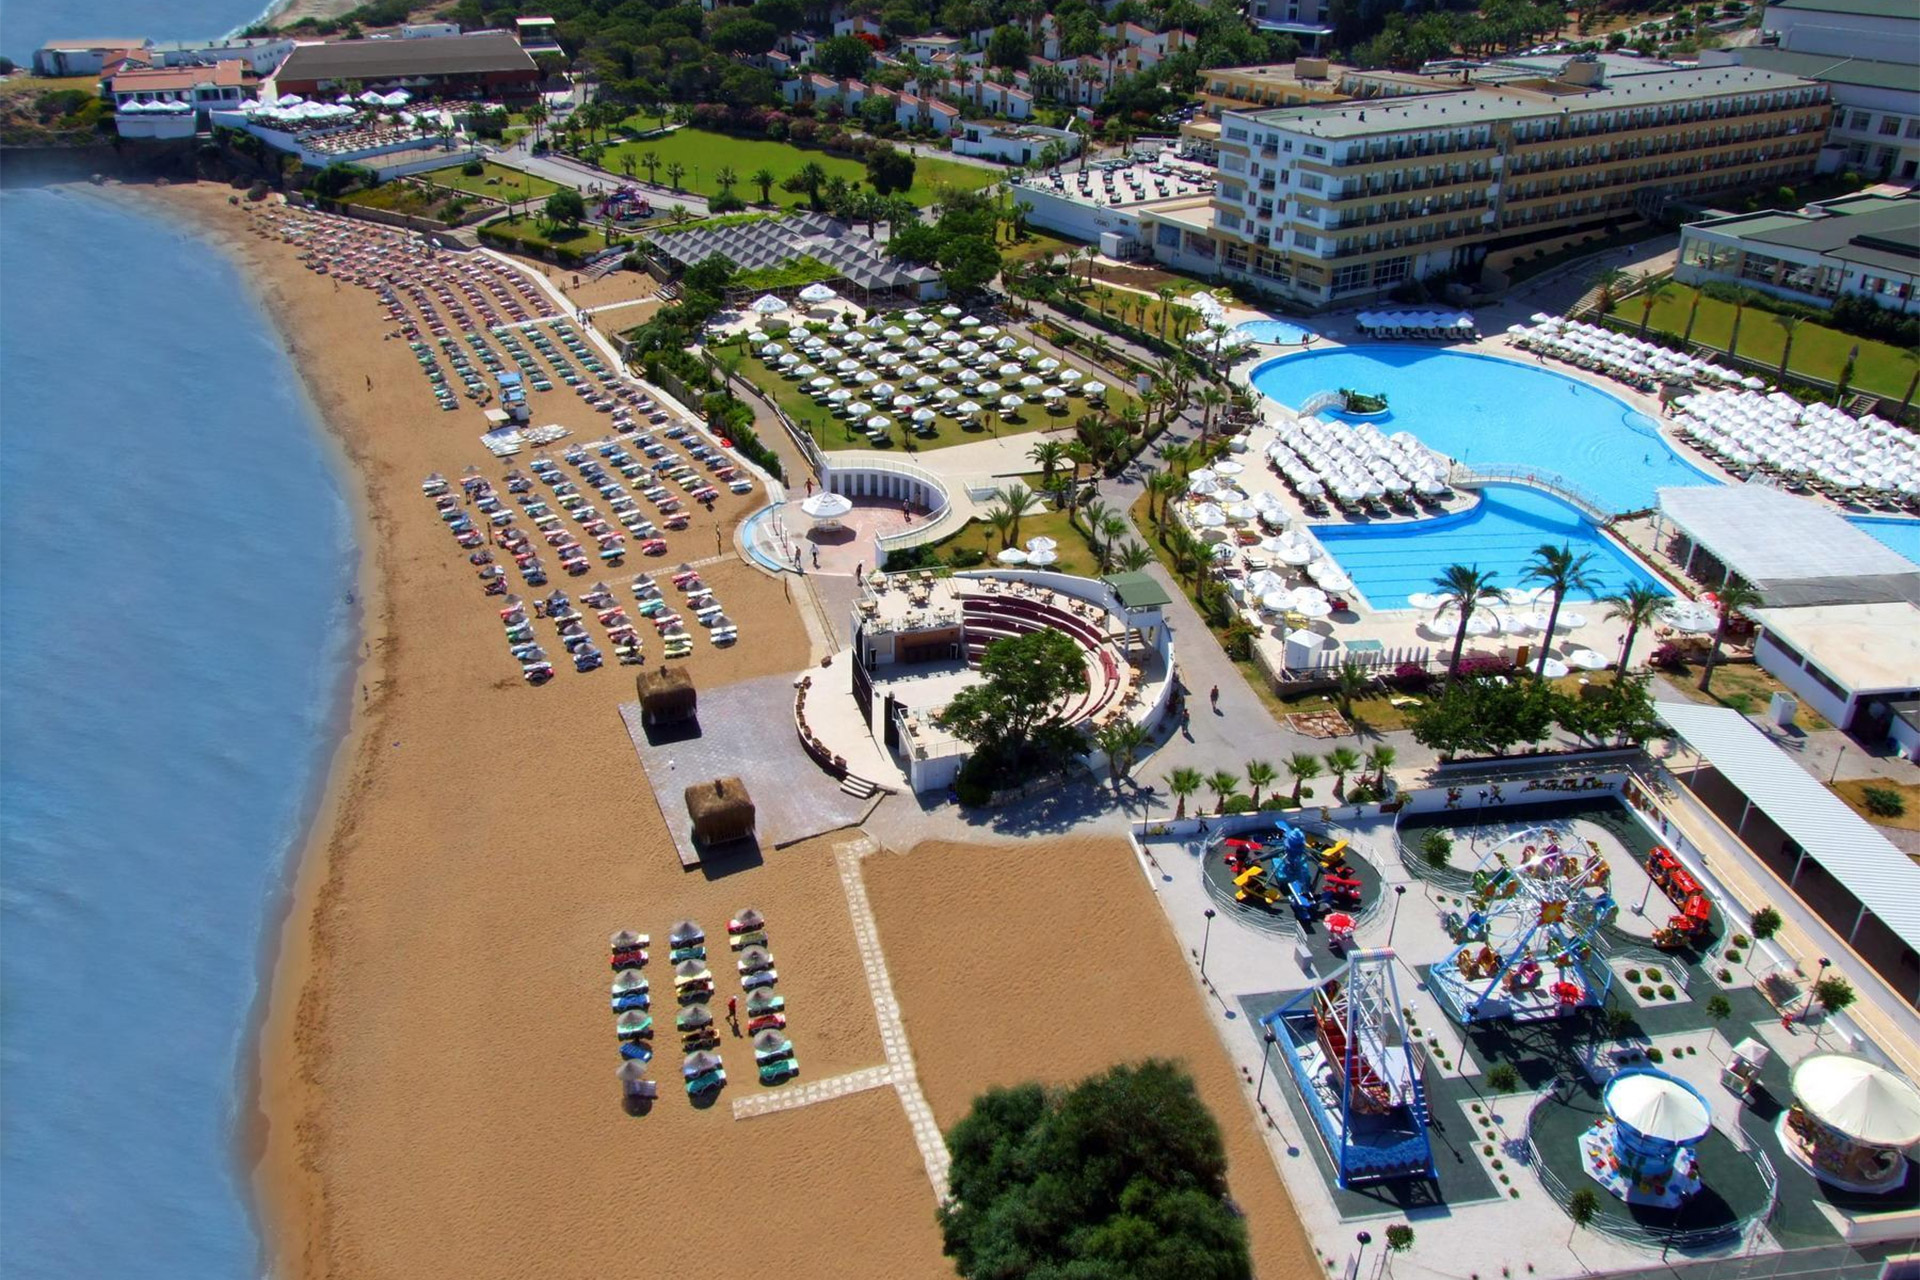 Hotel Acapulco - Northern Cyprus